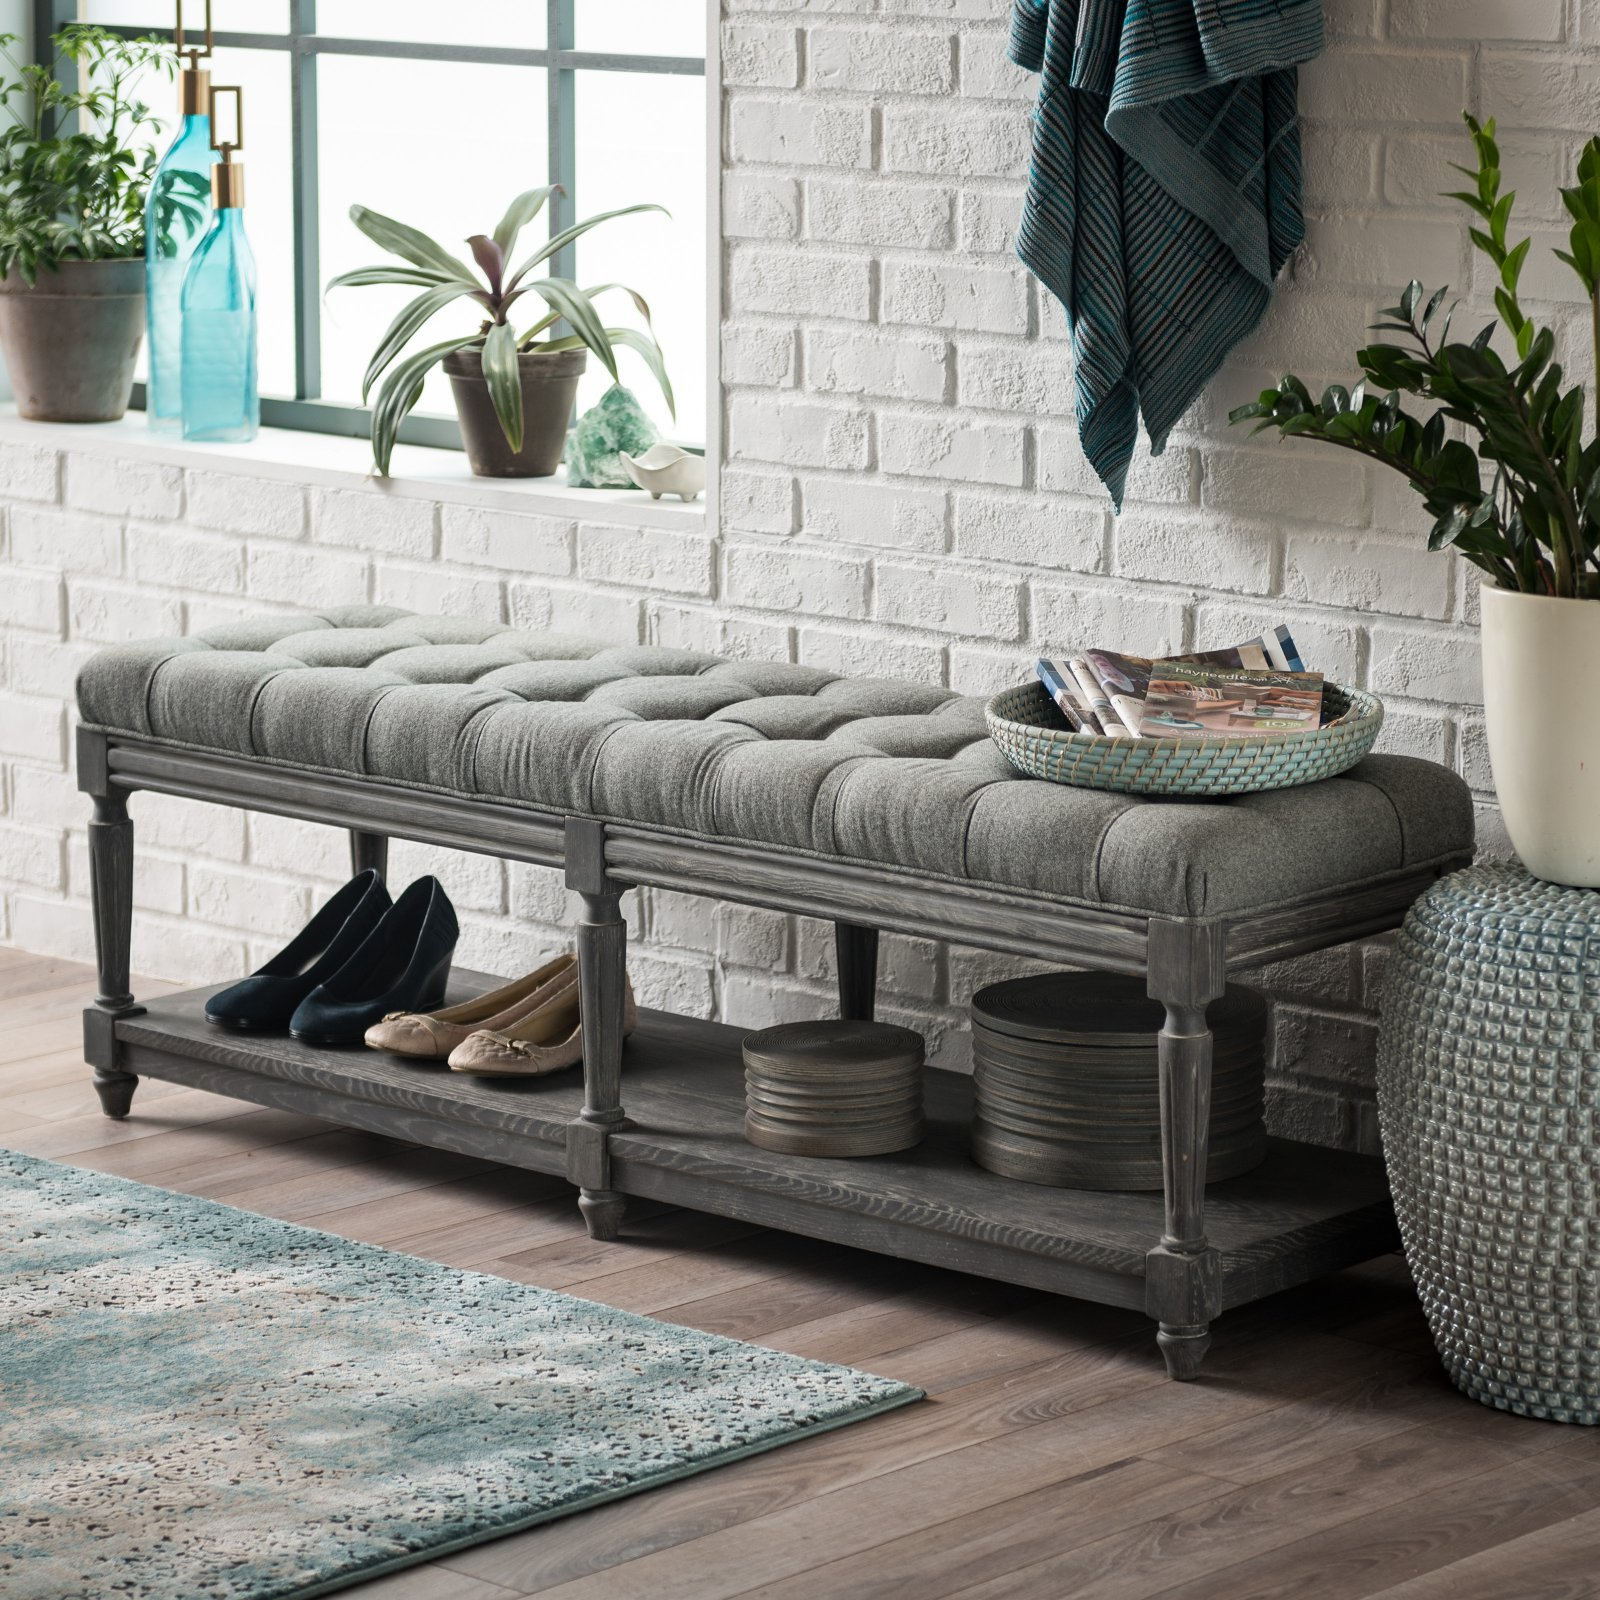 Belham Living Reagan Tufted Bench with Shelf